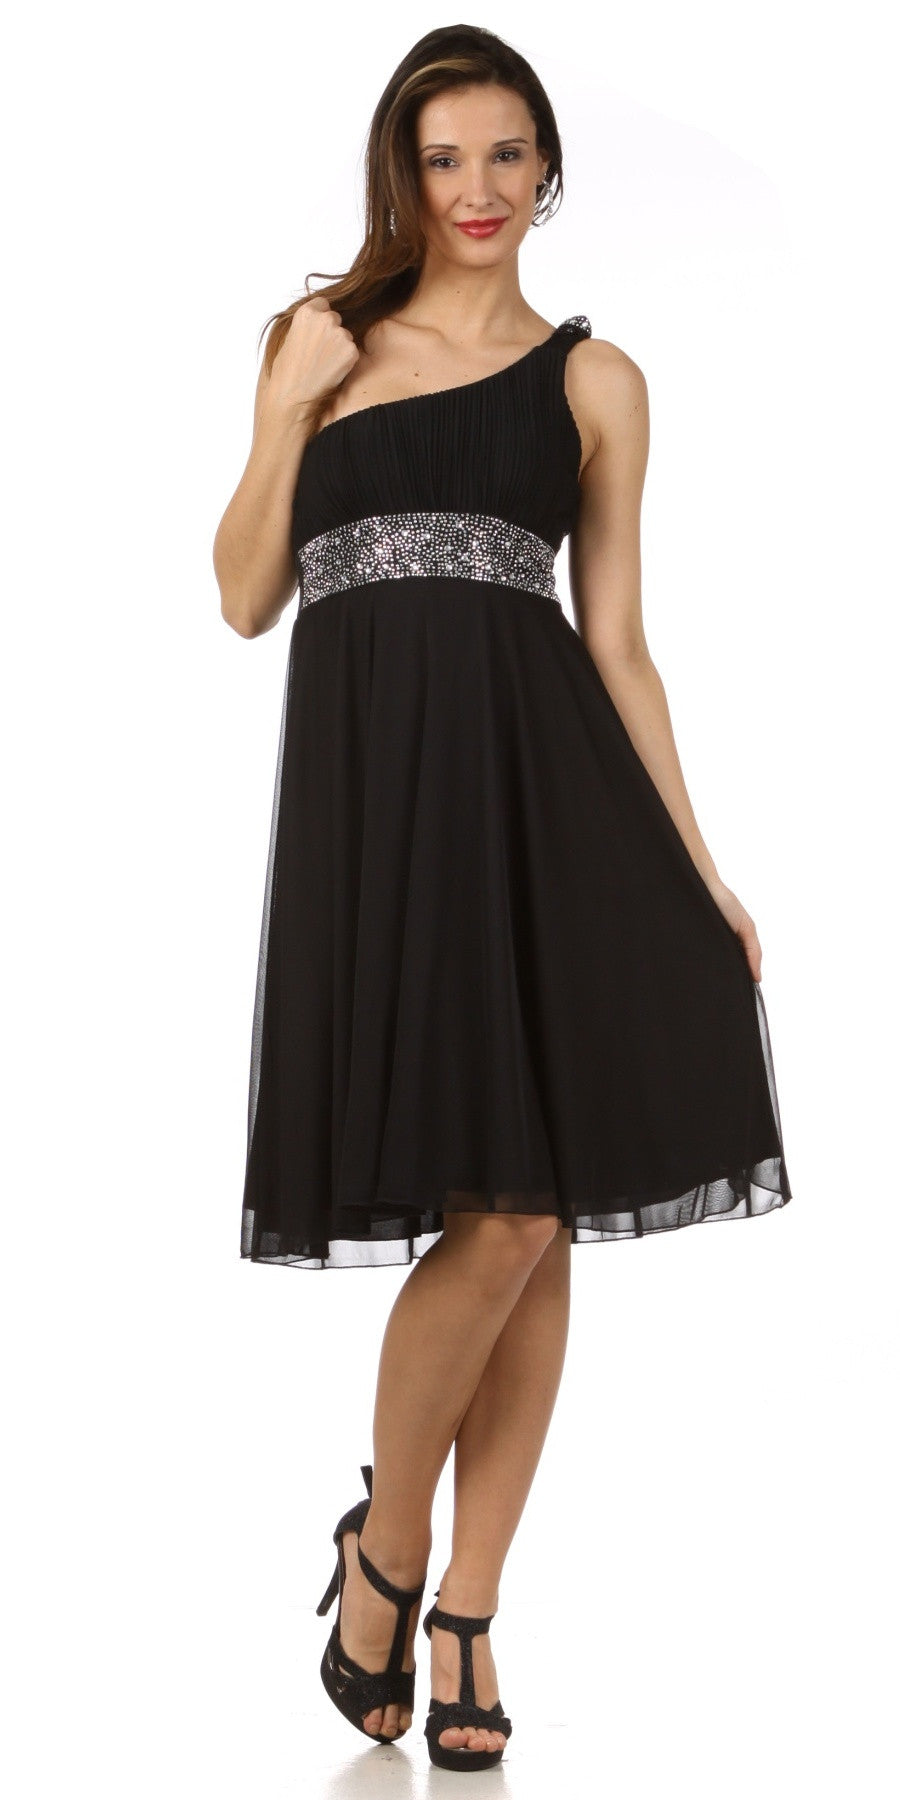 Black Knee Length Cocktail Dress chiffon One Shoulder Cruise Dress